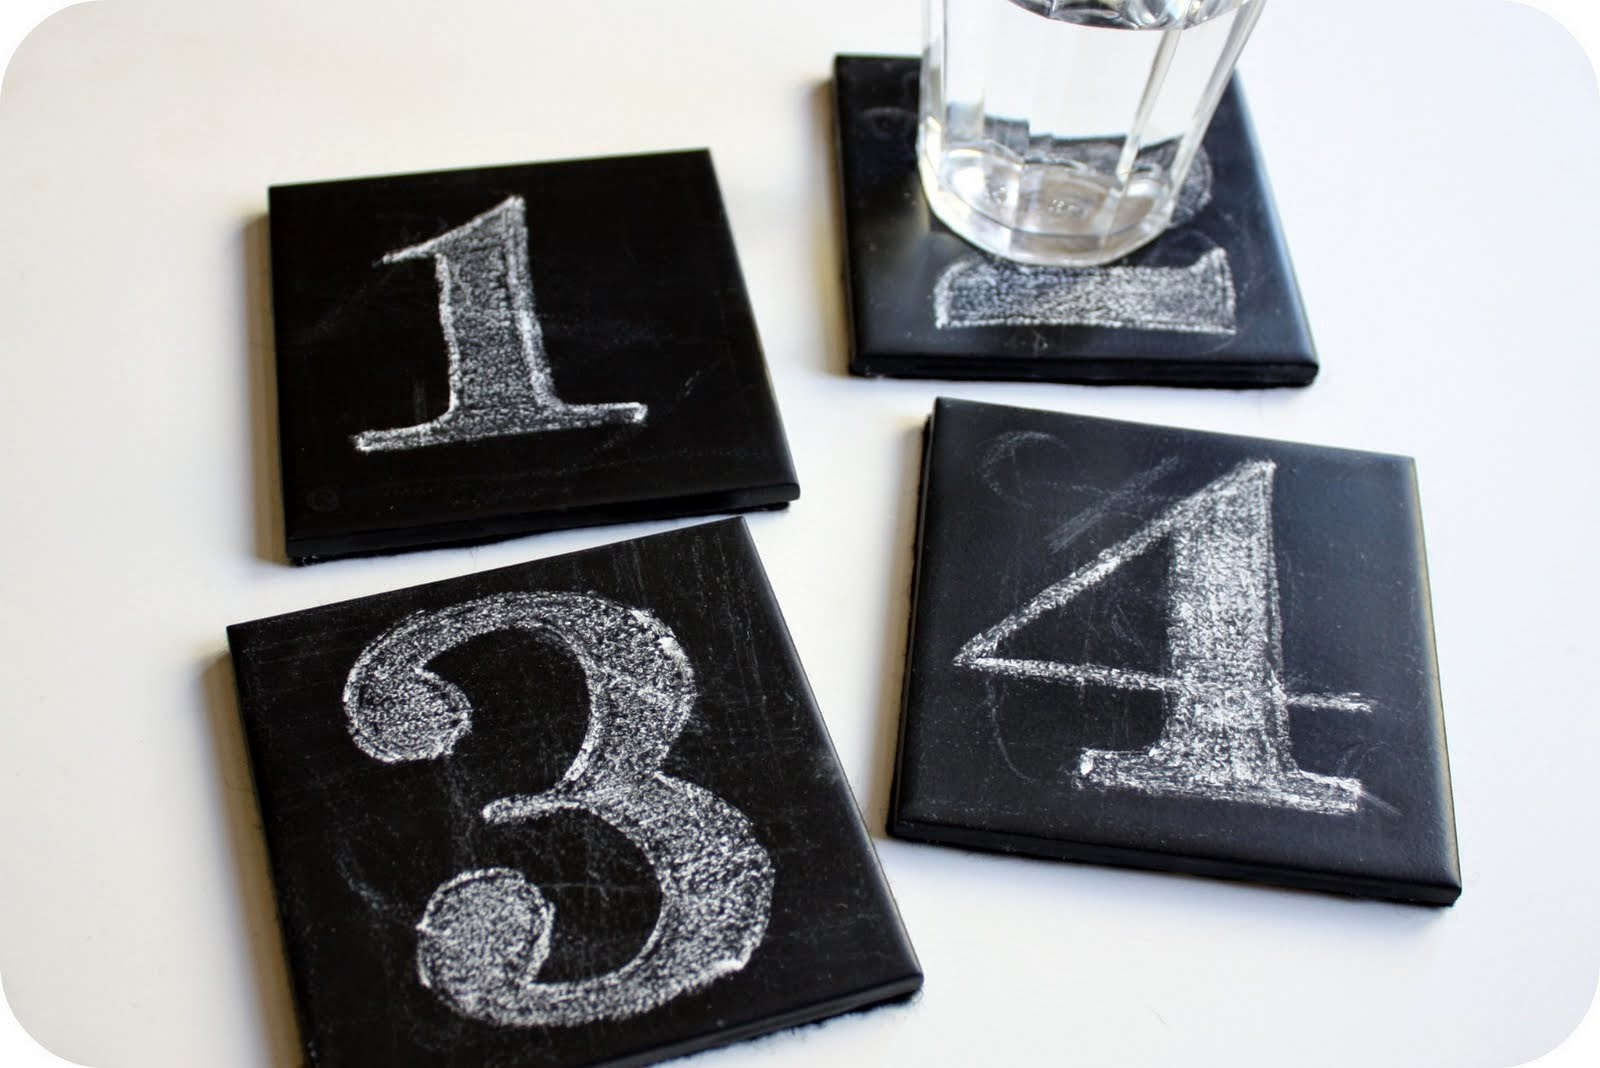 DIY Chalkboard Coasters from Crazy Wonderful - TONS of Chalkboard Paint Tutorials!